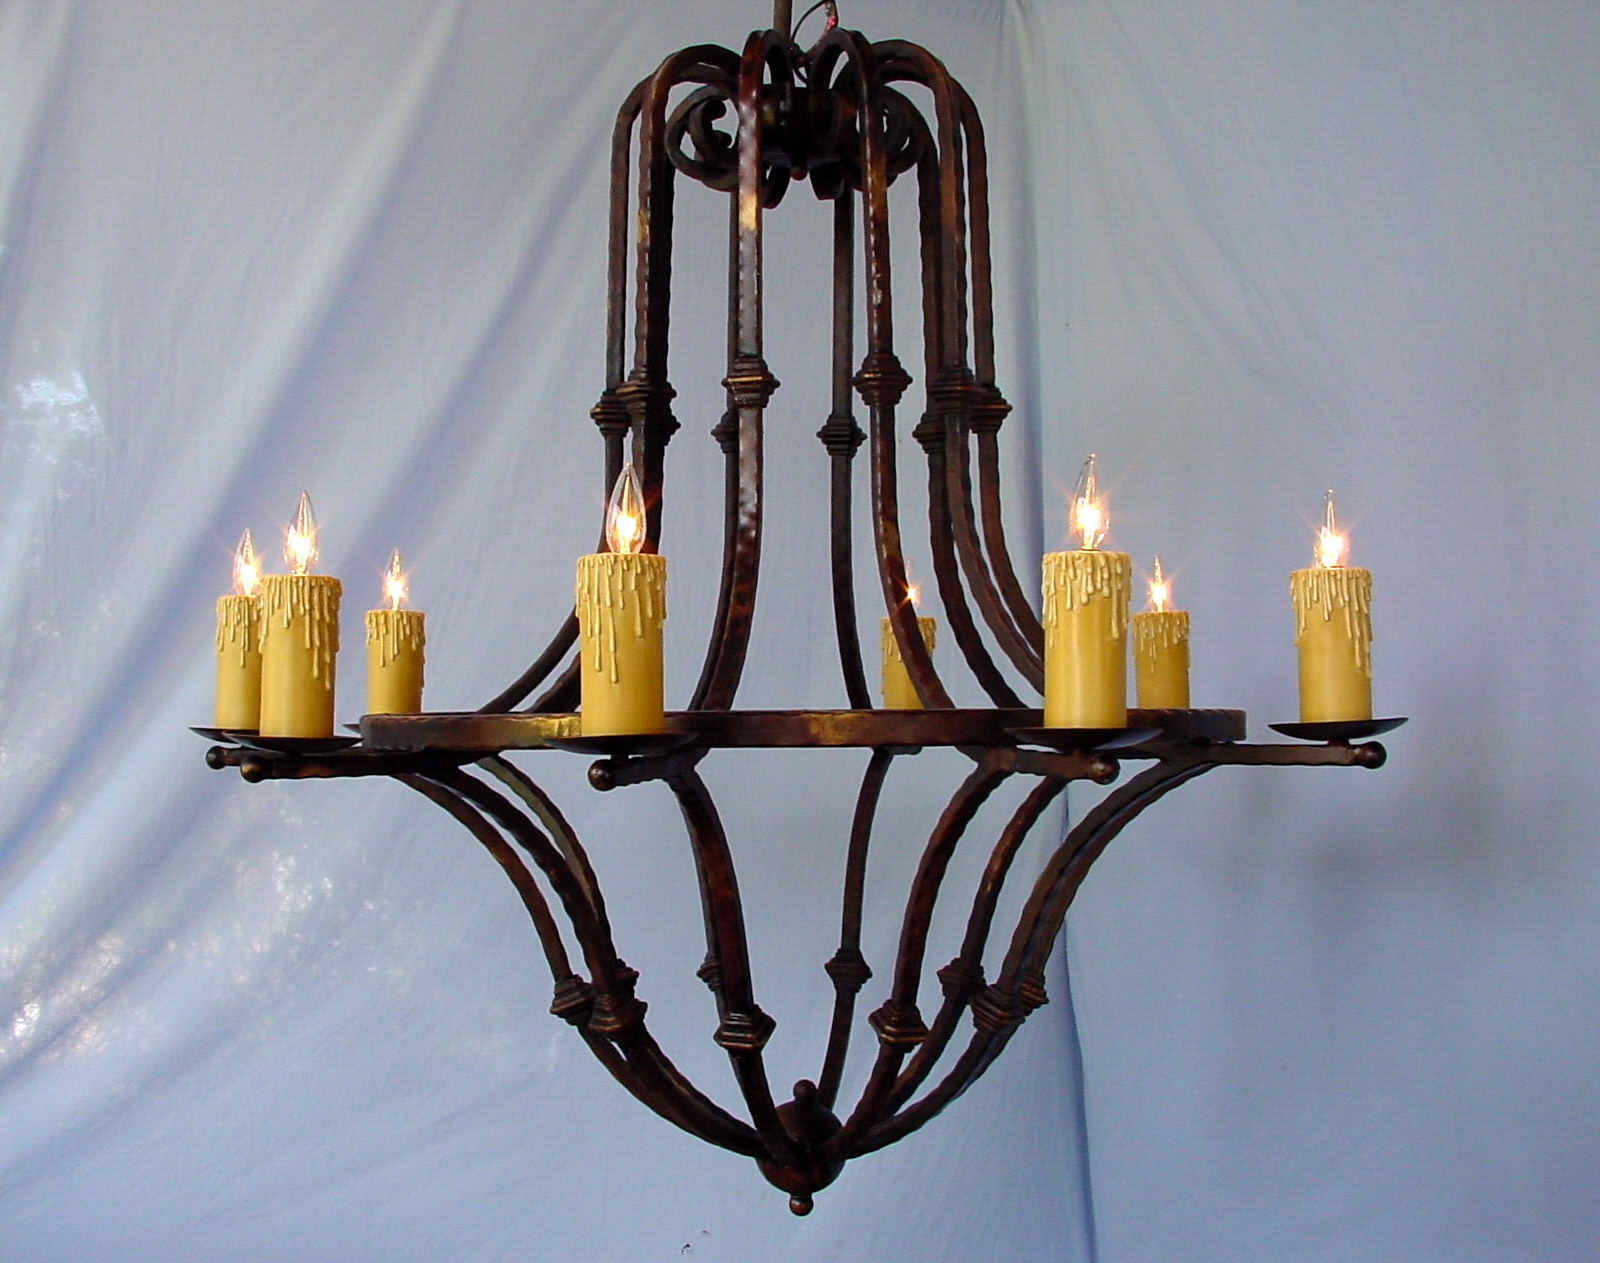 Modern Style Rustic Chandeliers Wrought Iron Castle Shield Rustic Intended For Modern Wrought Iron Chandeliers (Image 10 of 15)